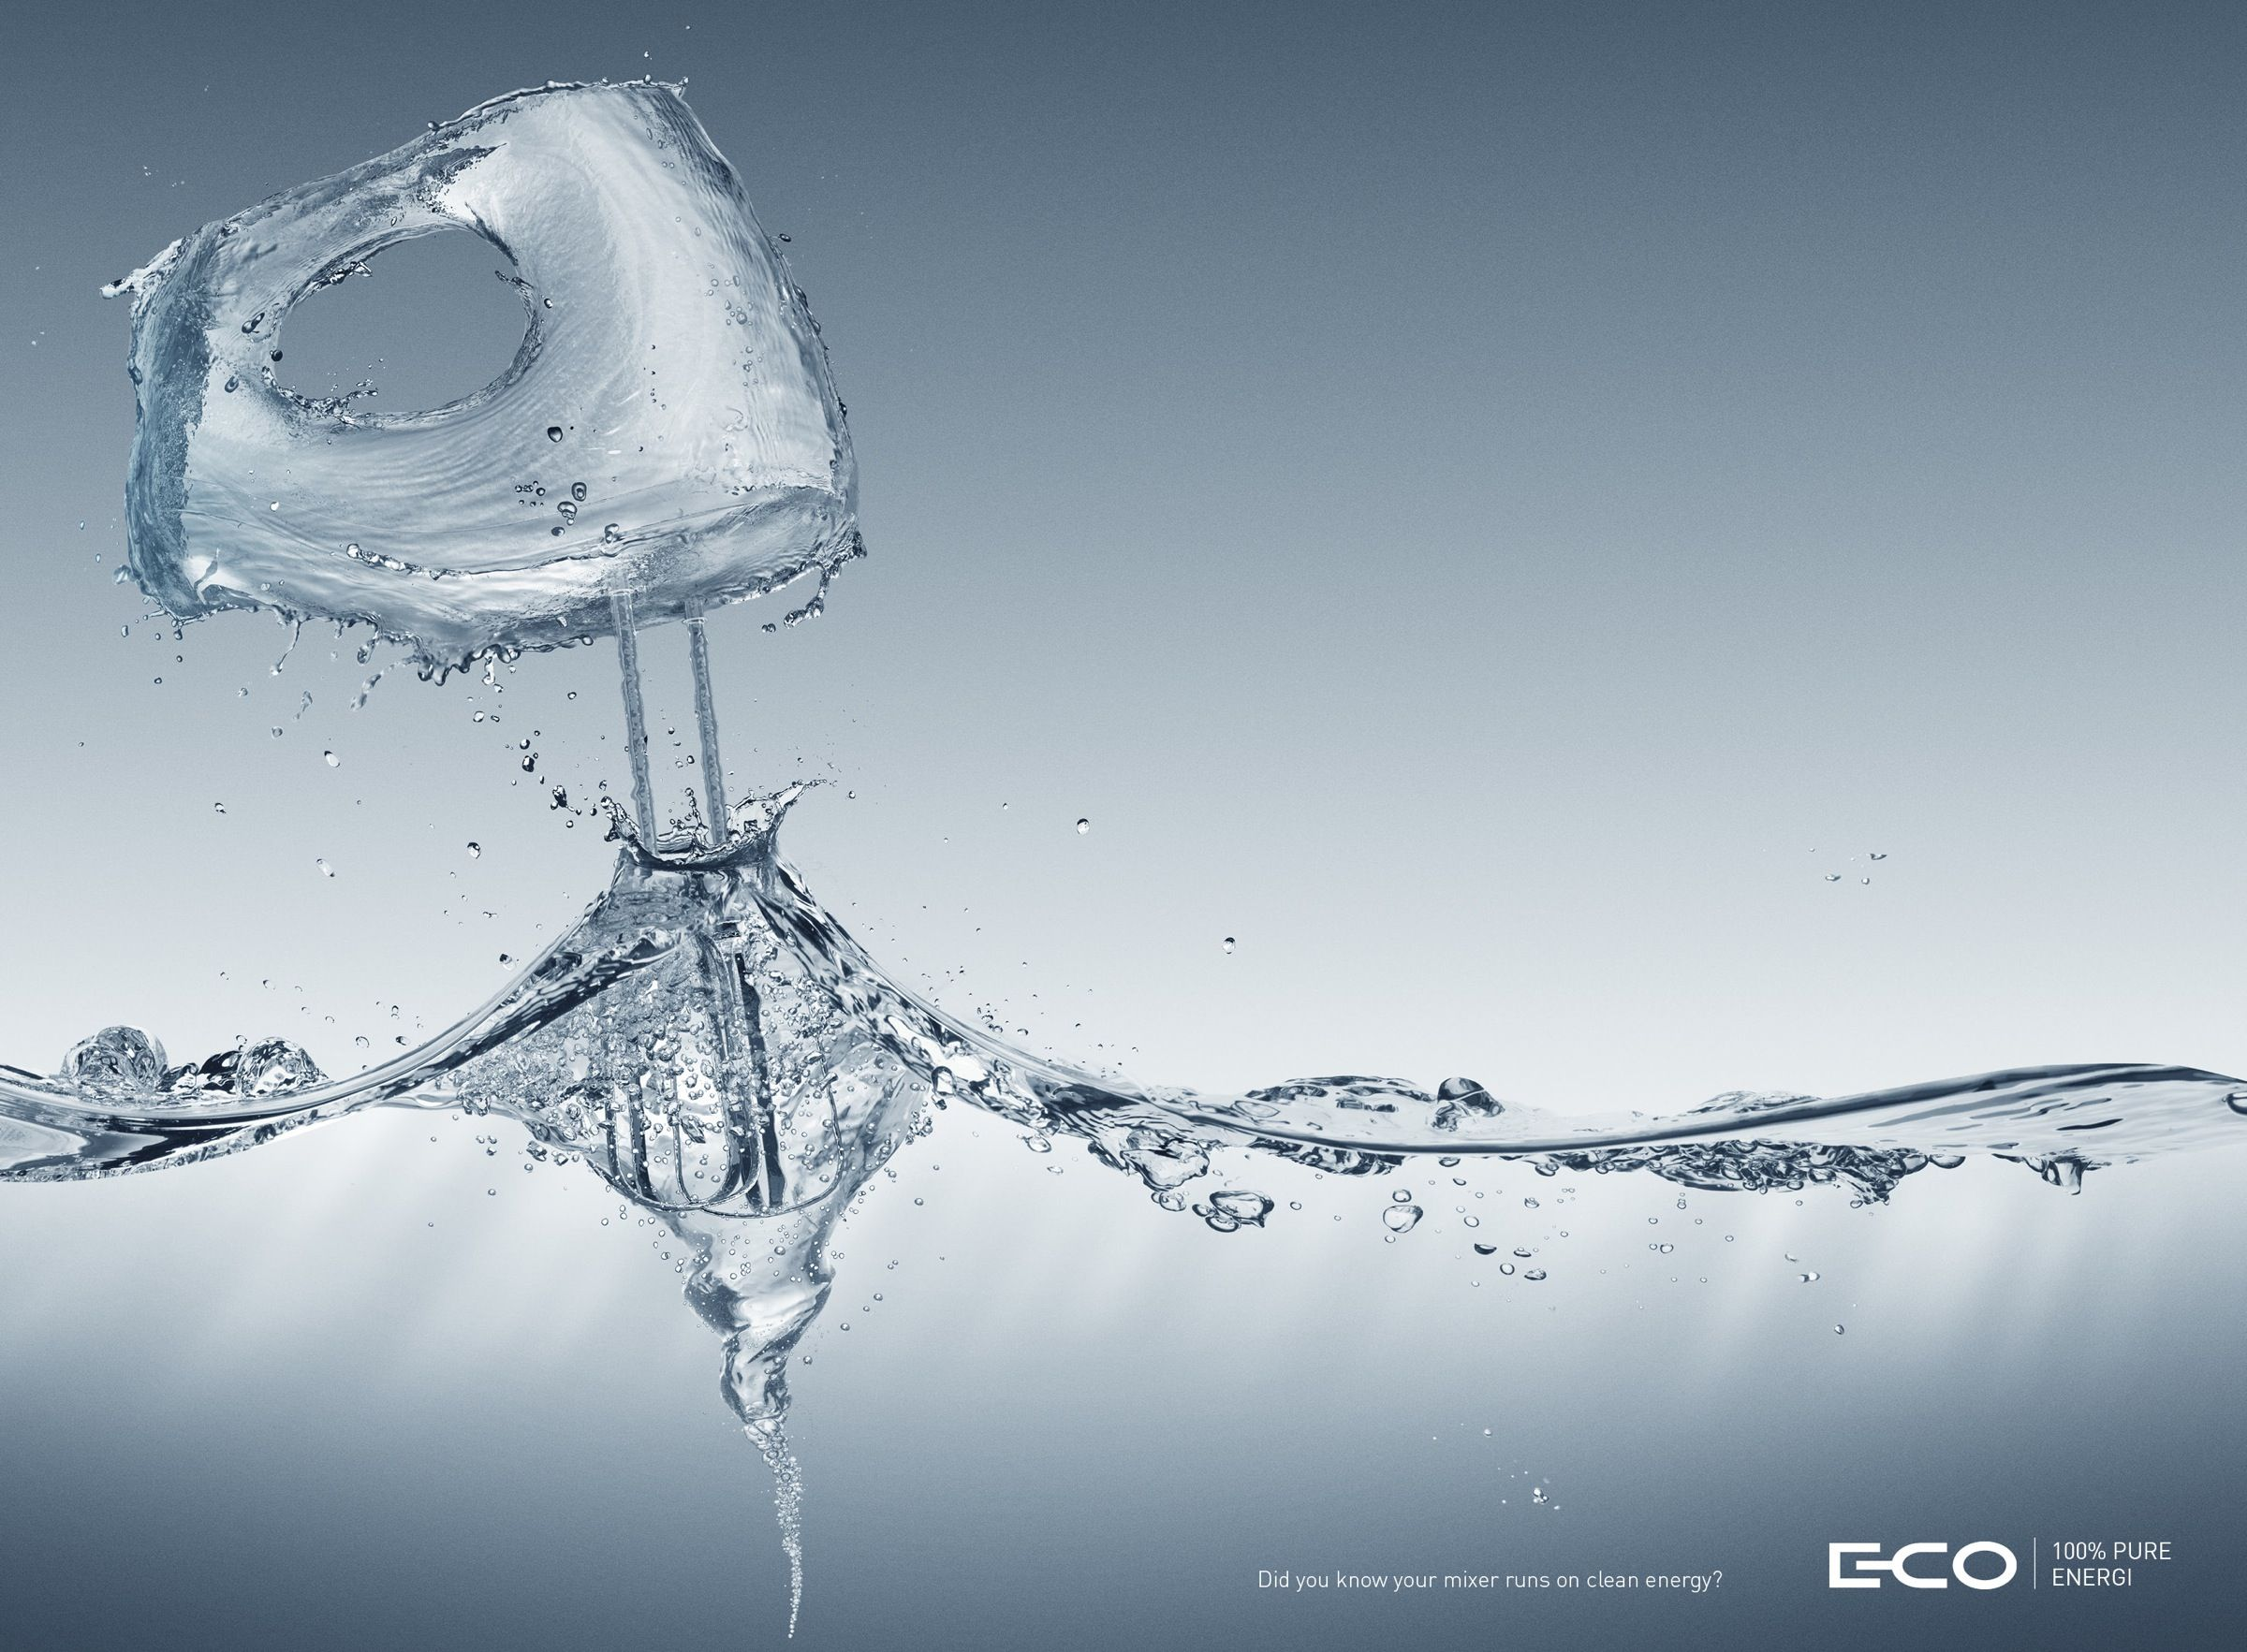 E-Co: Mixer 100% pure energy. Advertising Agency: Involve!, Oslo, Norway Creative Director / Art Director: Jørgen Marthinsen Copywriter: Espen Aarbake Johnsen Illustrator / Photographer: Igor R Nilsen Project manager: Sha Pakdel Published: May 2015